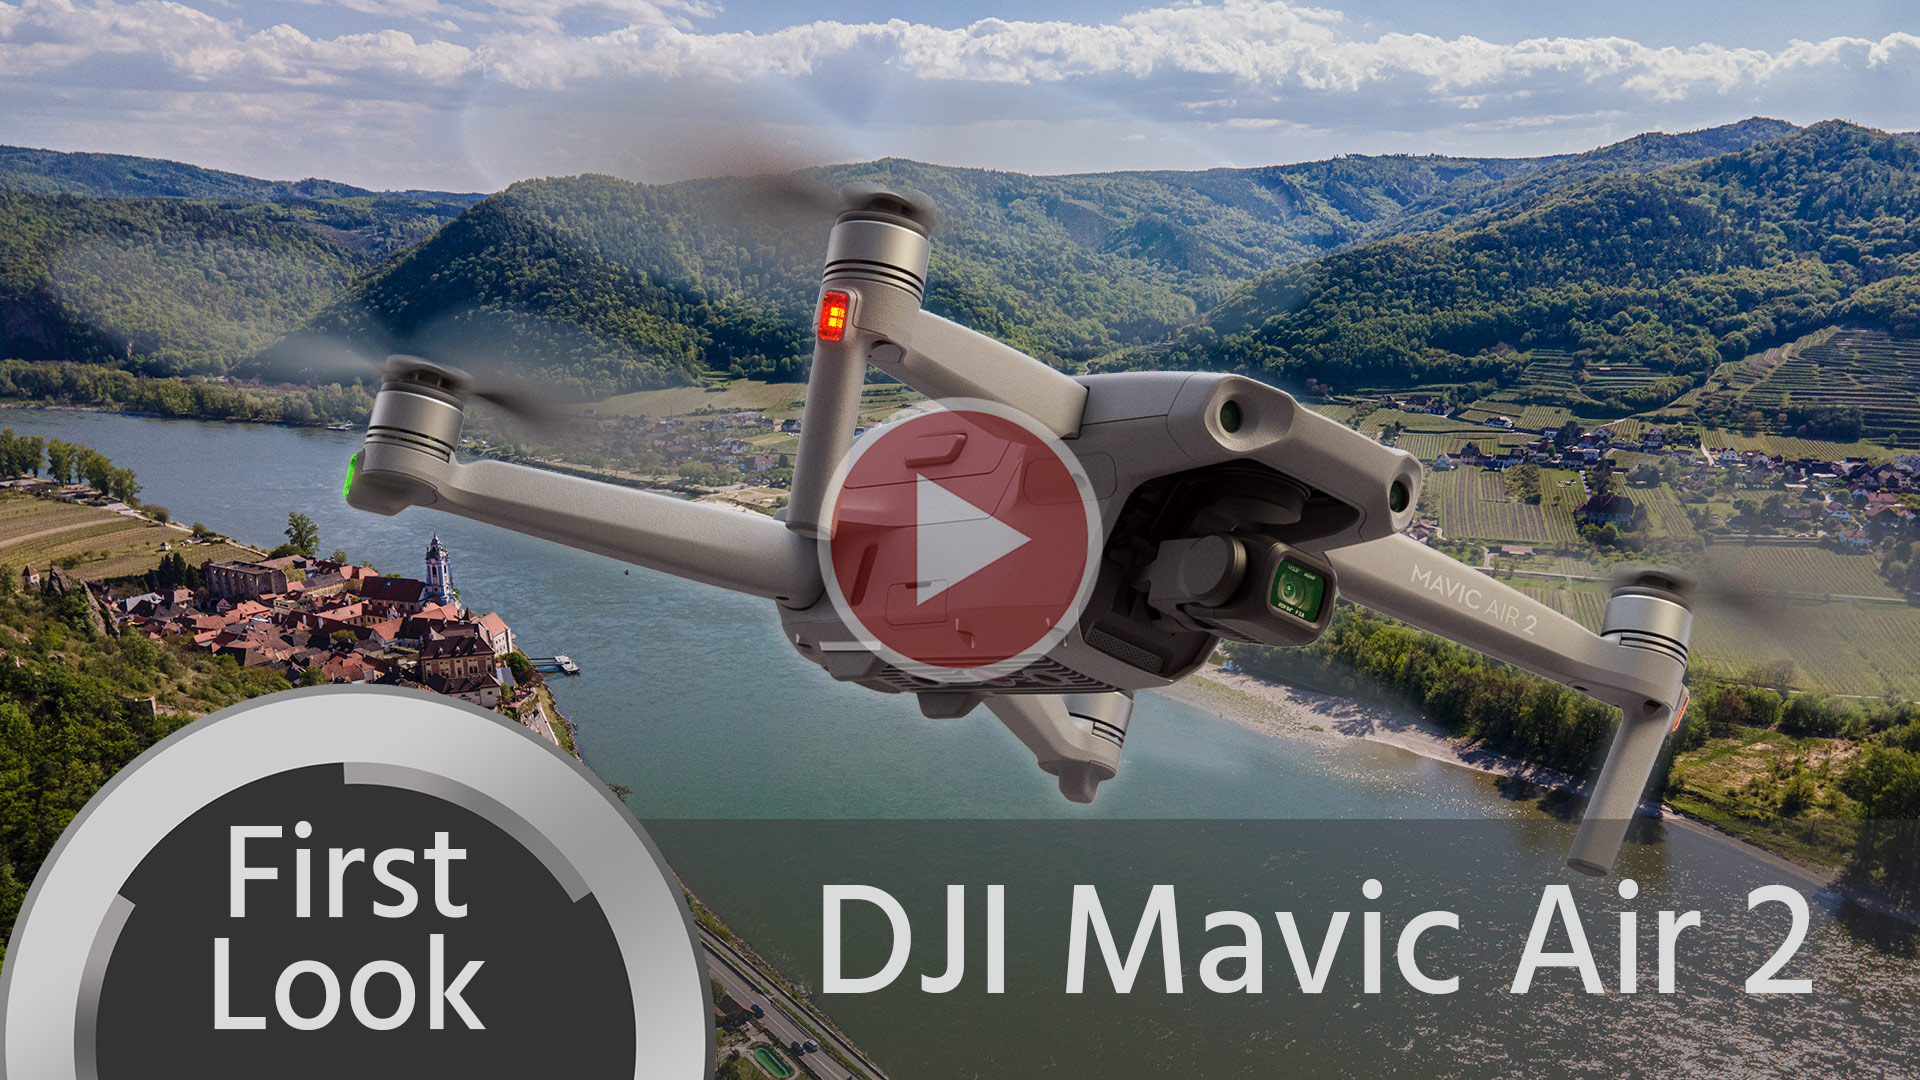 DJI Mavic Air 2 レビュー